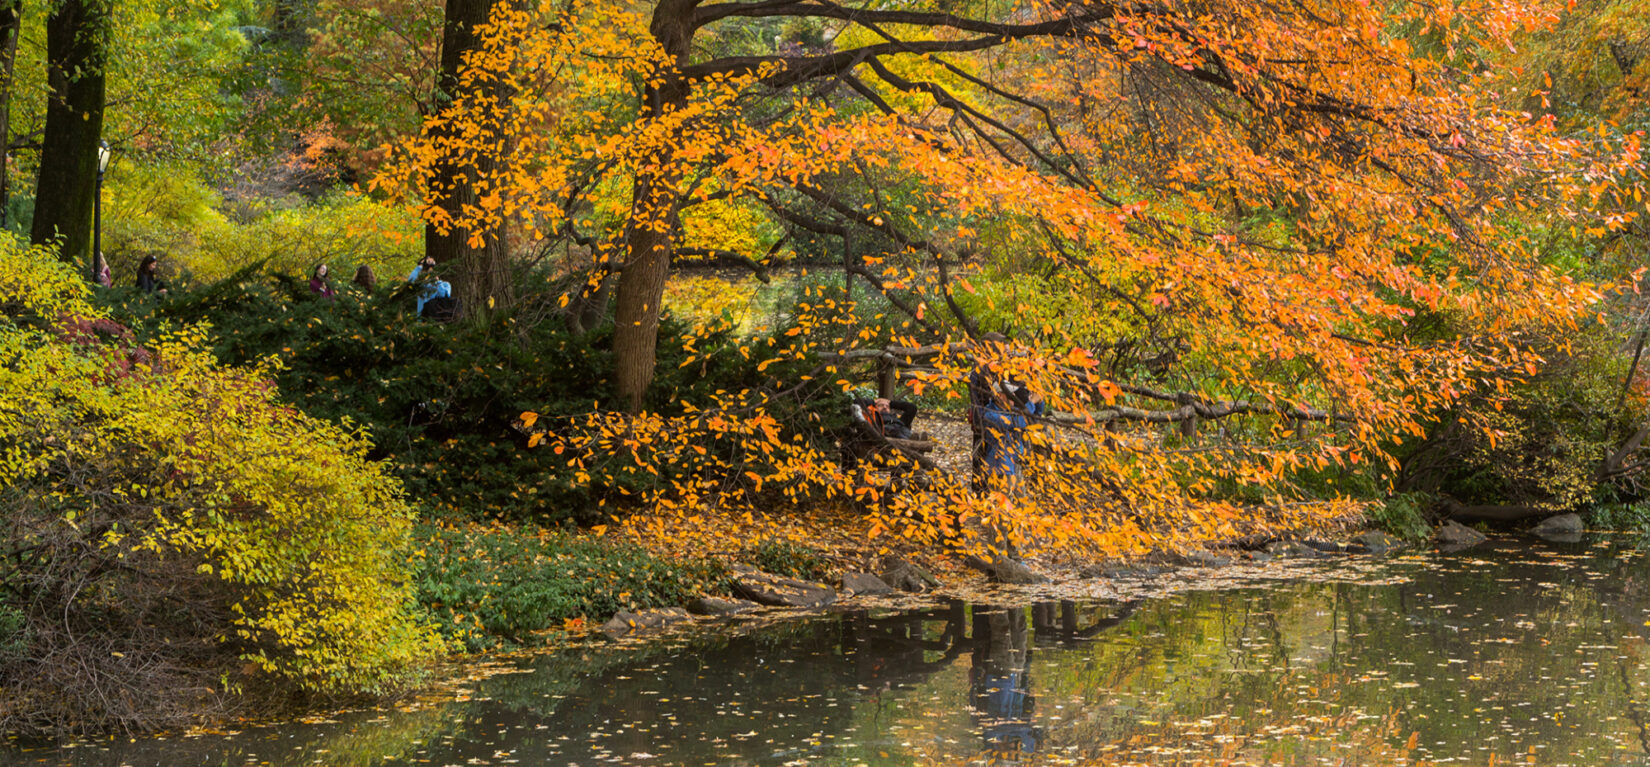 What Are Central Parks Most Colorful Fall Trees